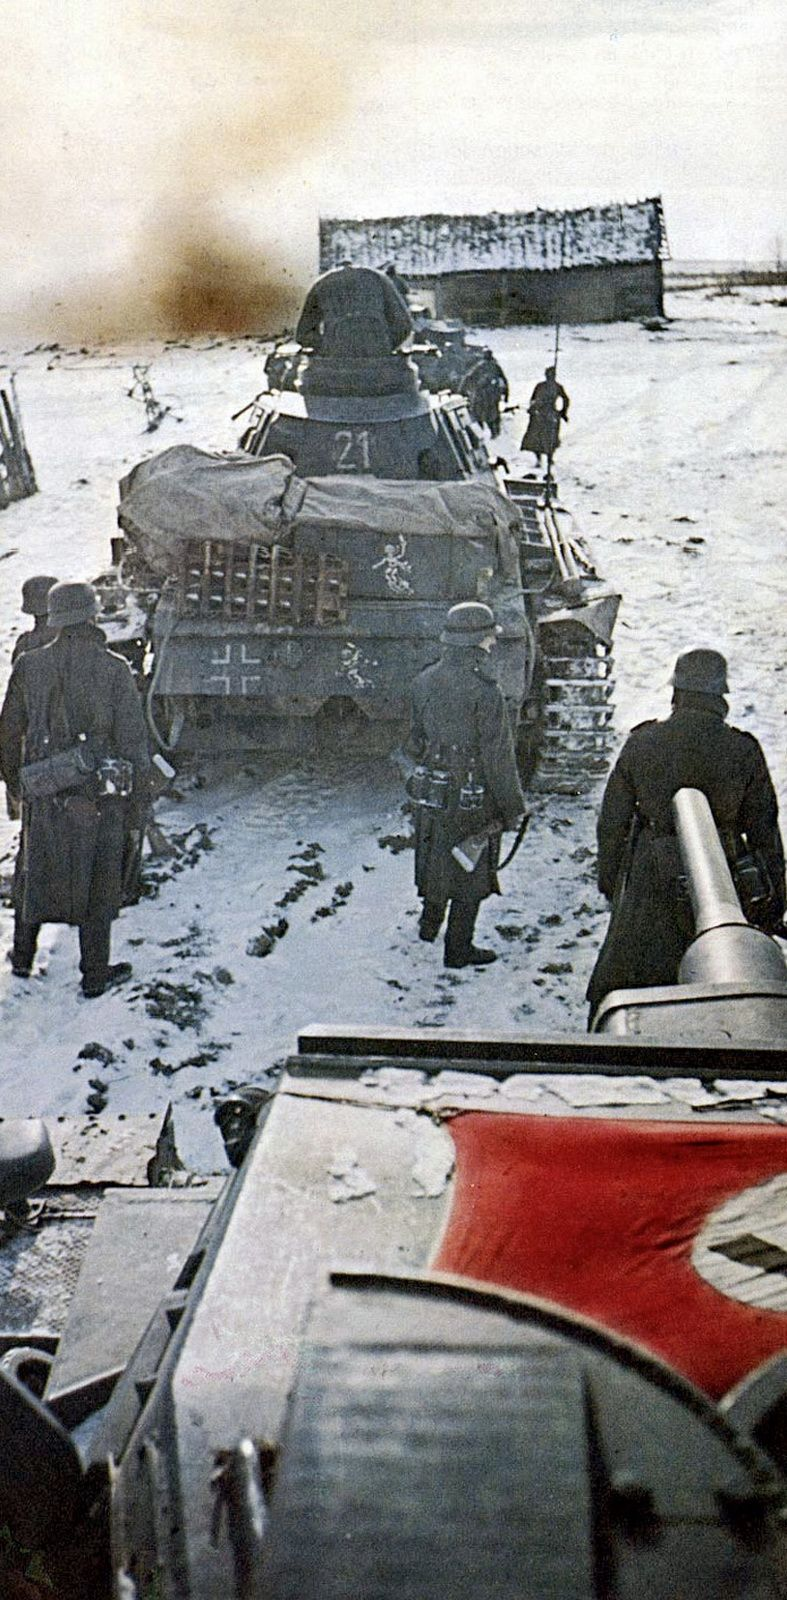 Panzerkampfwagen III Ausf.H tanks of 11. Panzer-Division enter a Soviet village. The 11. Panzer-Division fought in Operation Barbarossa from June 22, 1941 to June 1944, then the division was transferred to France. It suffered heavy losses in both the Eastern and Western Fronts and was rebuilt several times with personnel and equipment from other units. 11th Panzer surrendered to the Americans in April 1945. Note the equipment covered by tarps and the extra track on the Panzer III